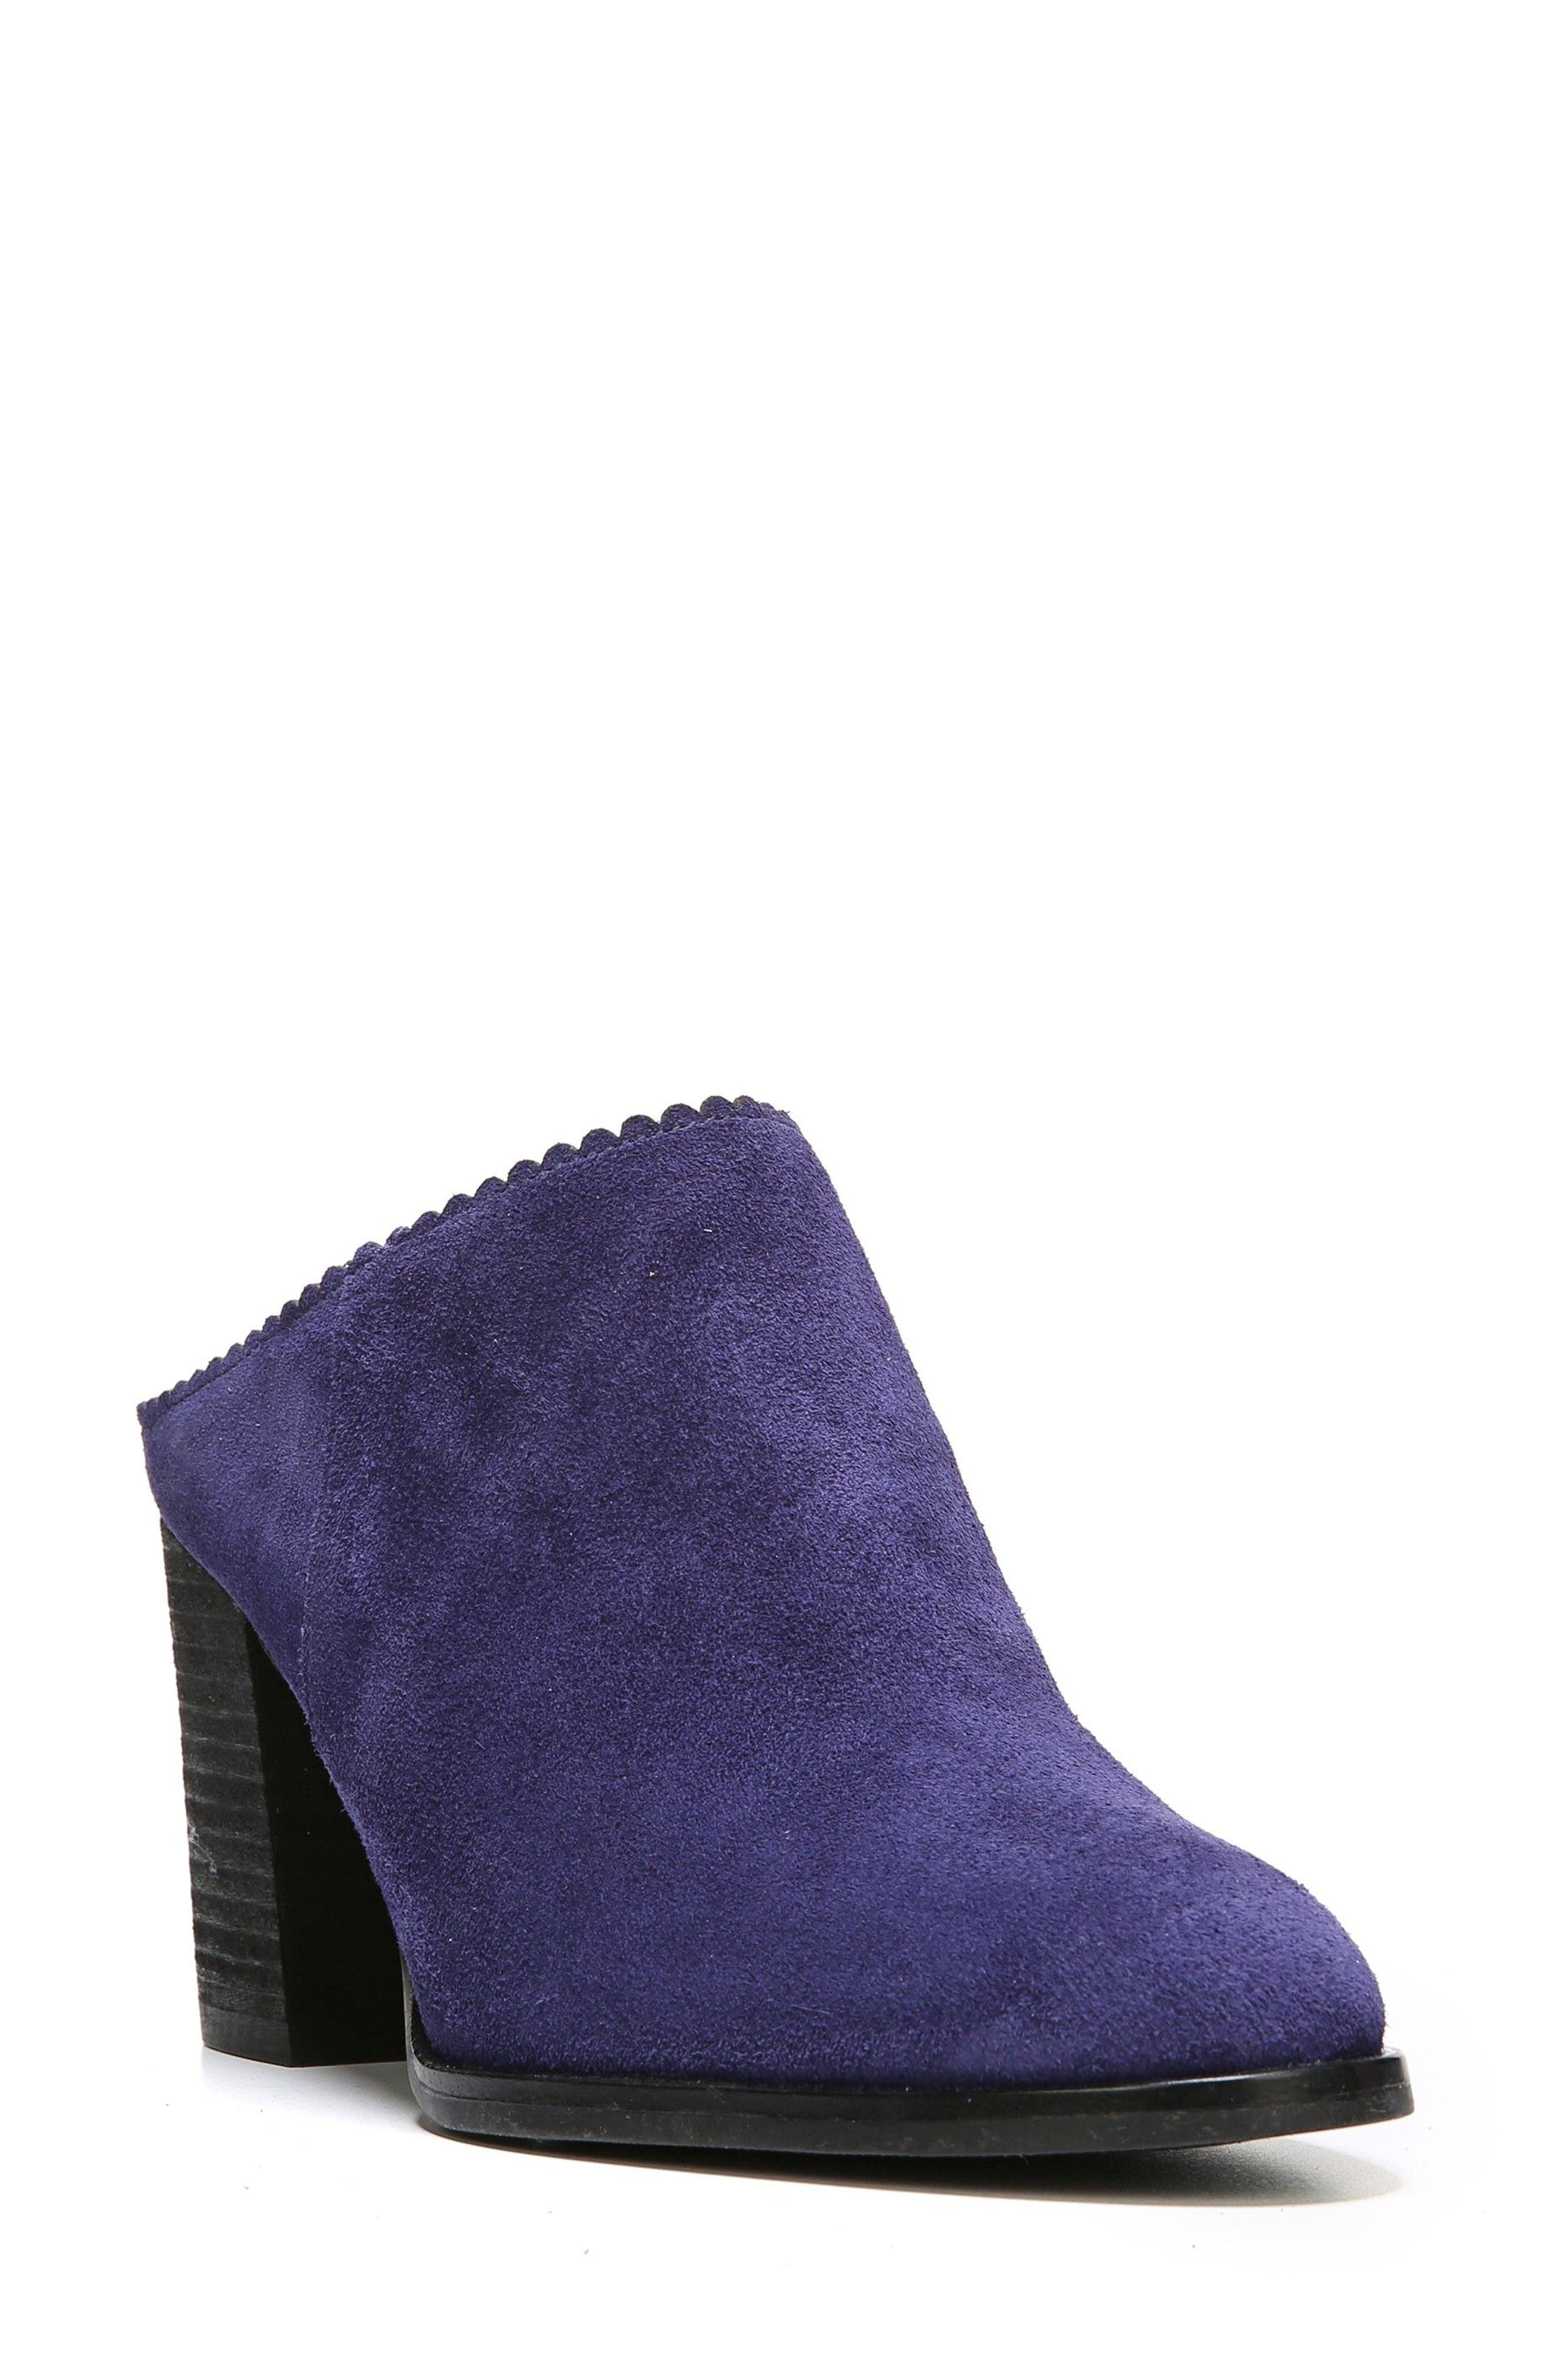 Via Spiga Sophia Block Heel Mule (Women)